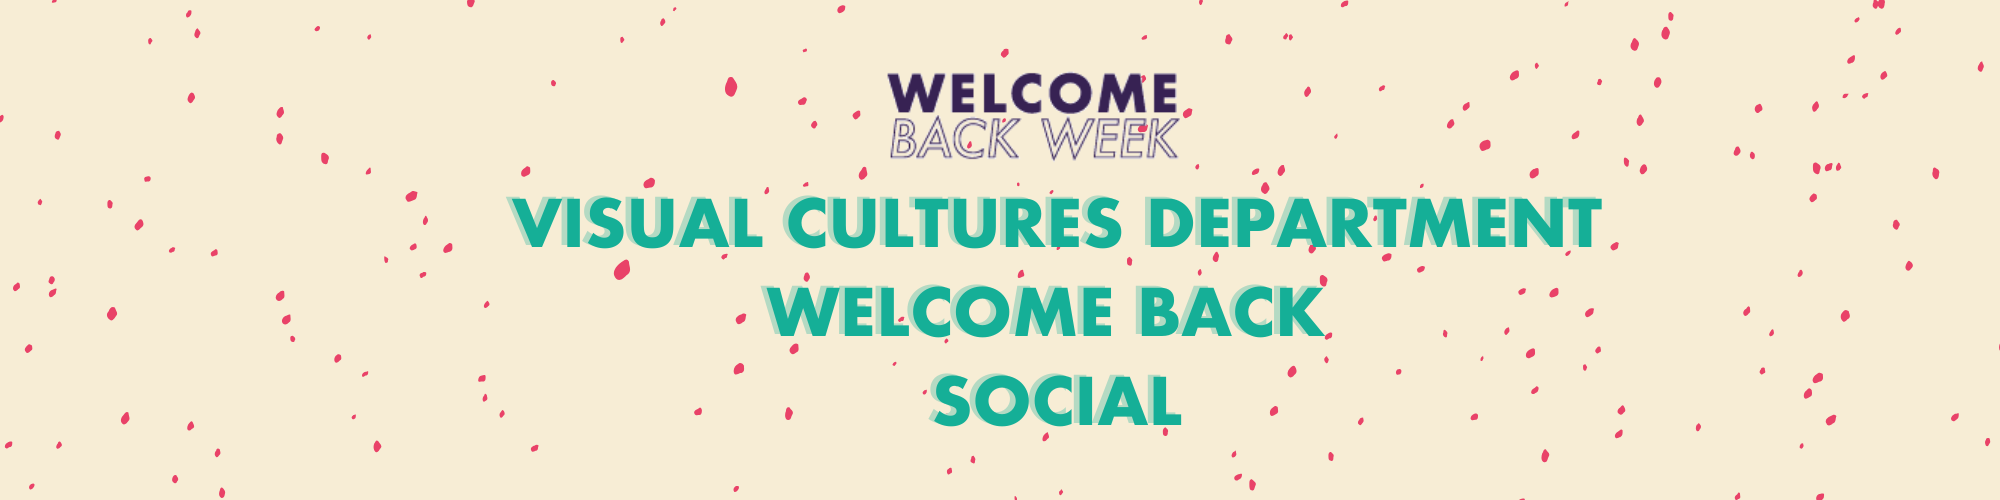 Visual Cultures Department Welcome Back Social